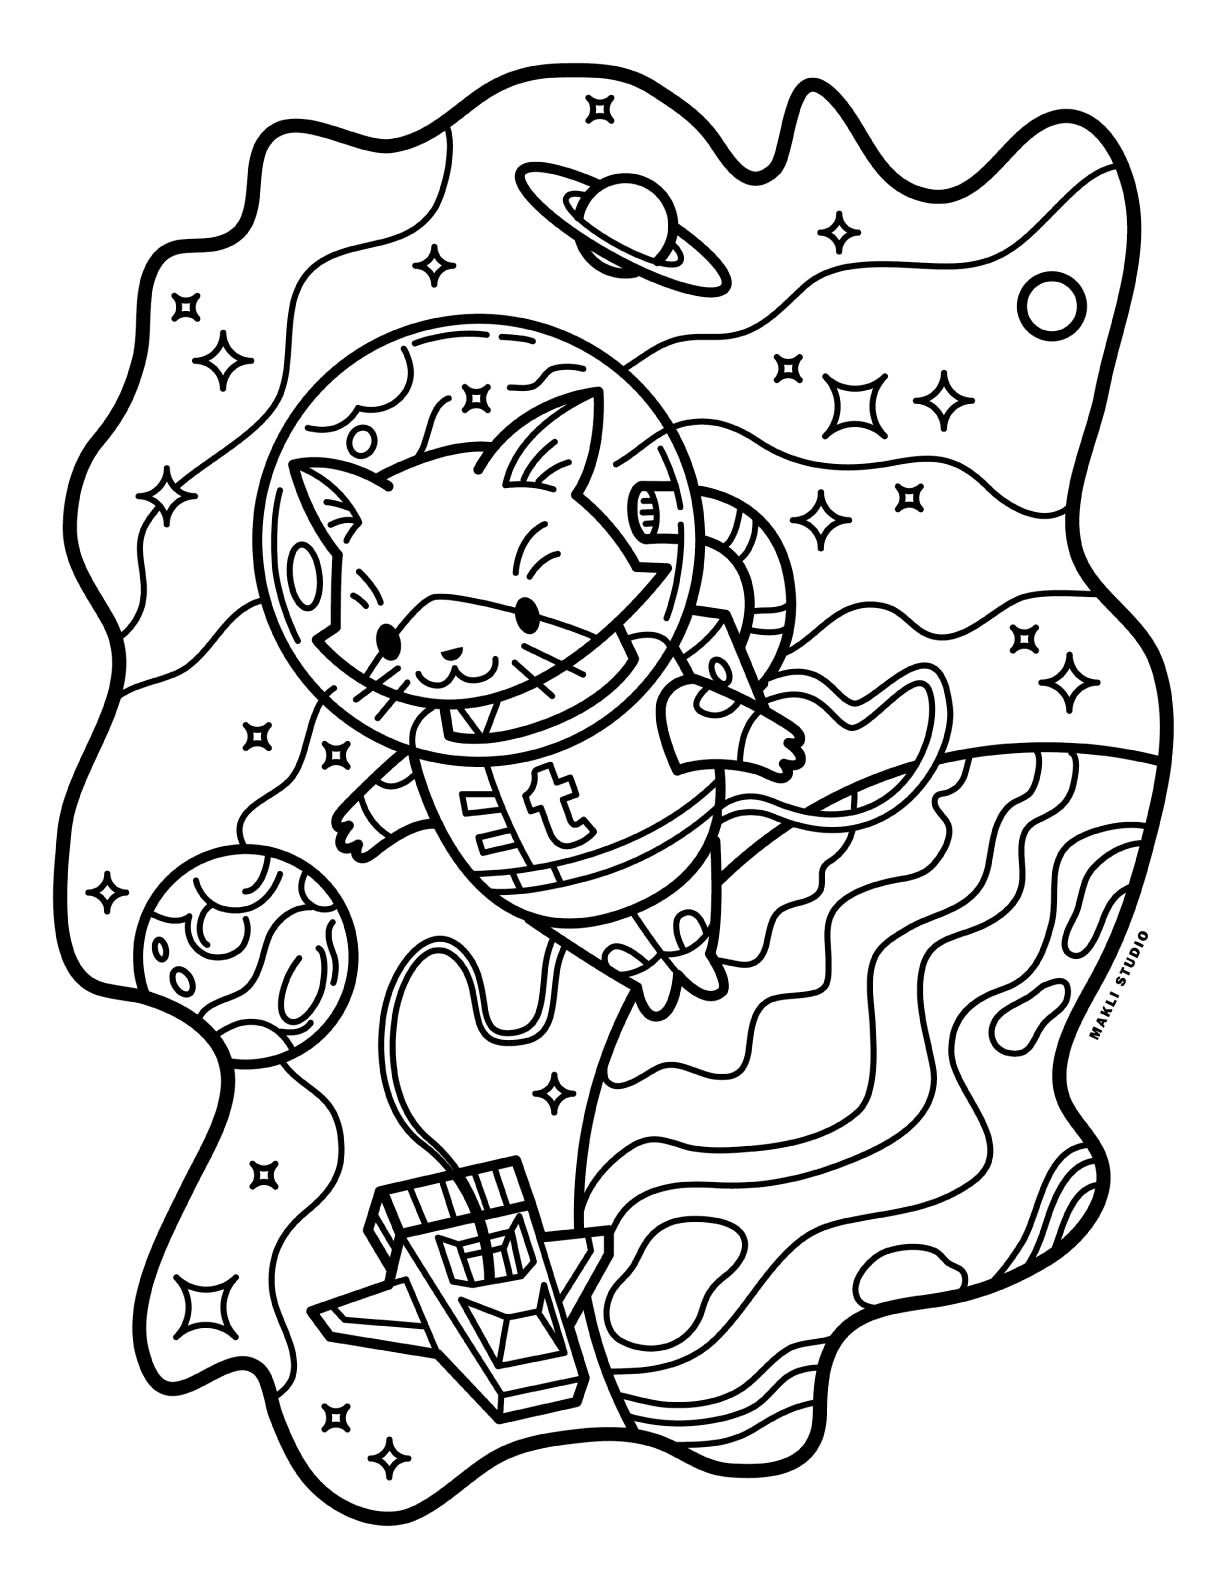 Image Result For Coloring Pages Space Tumblr Space Coloring Pages Tumblr Coloring Pages Planet Coloring Pages